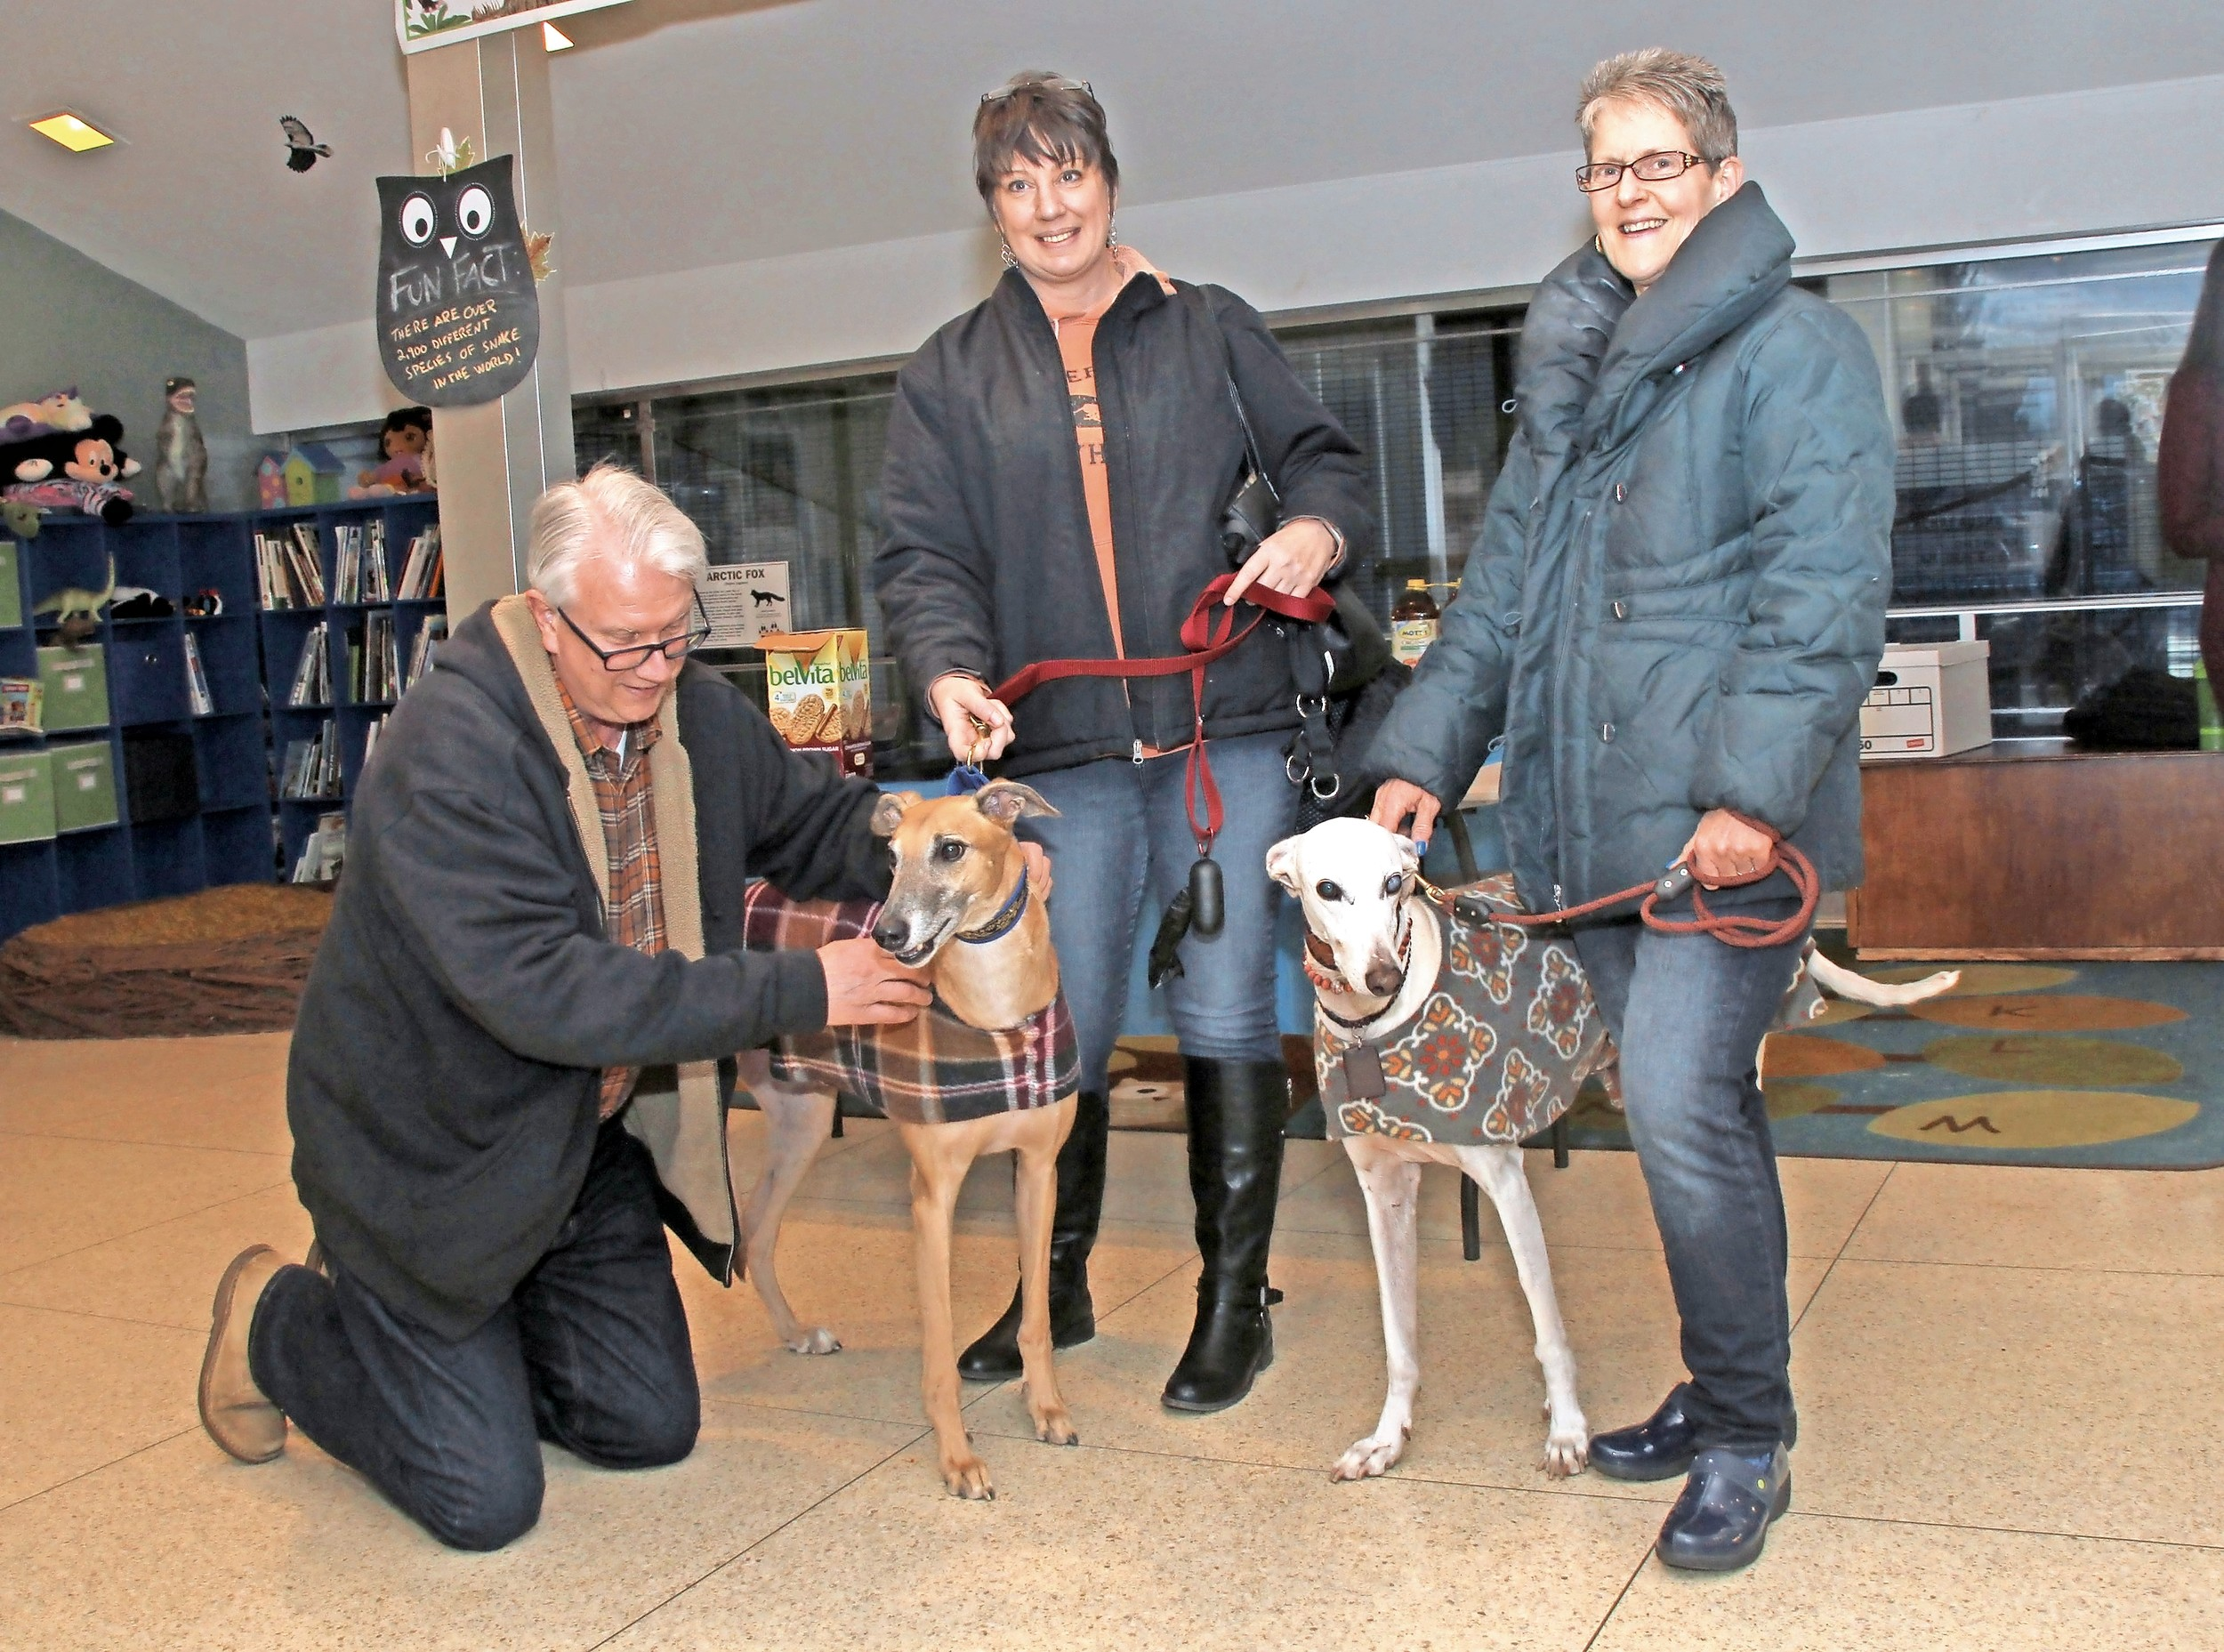 Peter Ruffner, left, a Friends of Tackapausha board member, met Liz Perry and her greyhound, Murphy; and Nancy Nelson and her dog, Pablo.